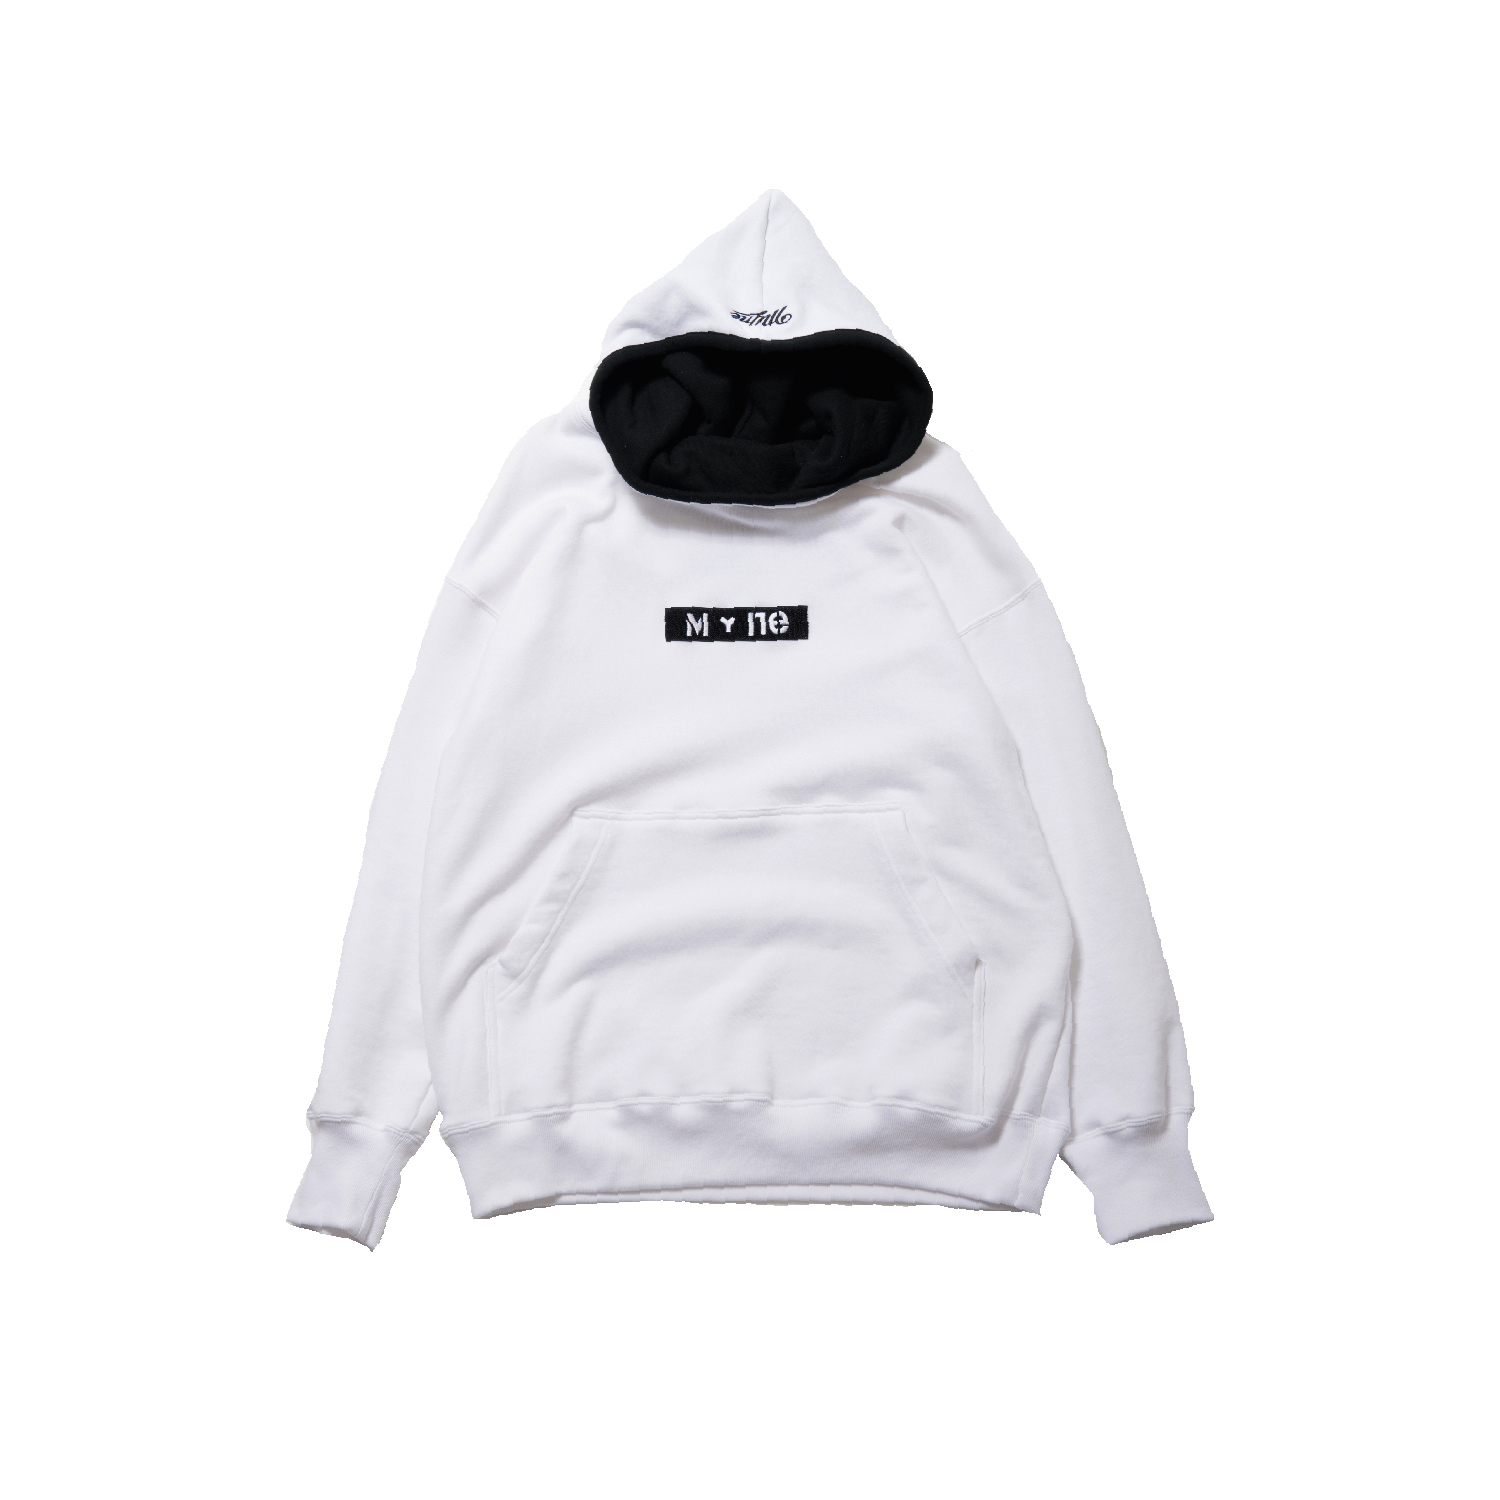 M+ne MAGIC TAPE HOODIE / WHITE - 画像1